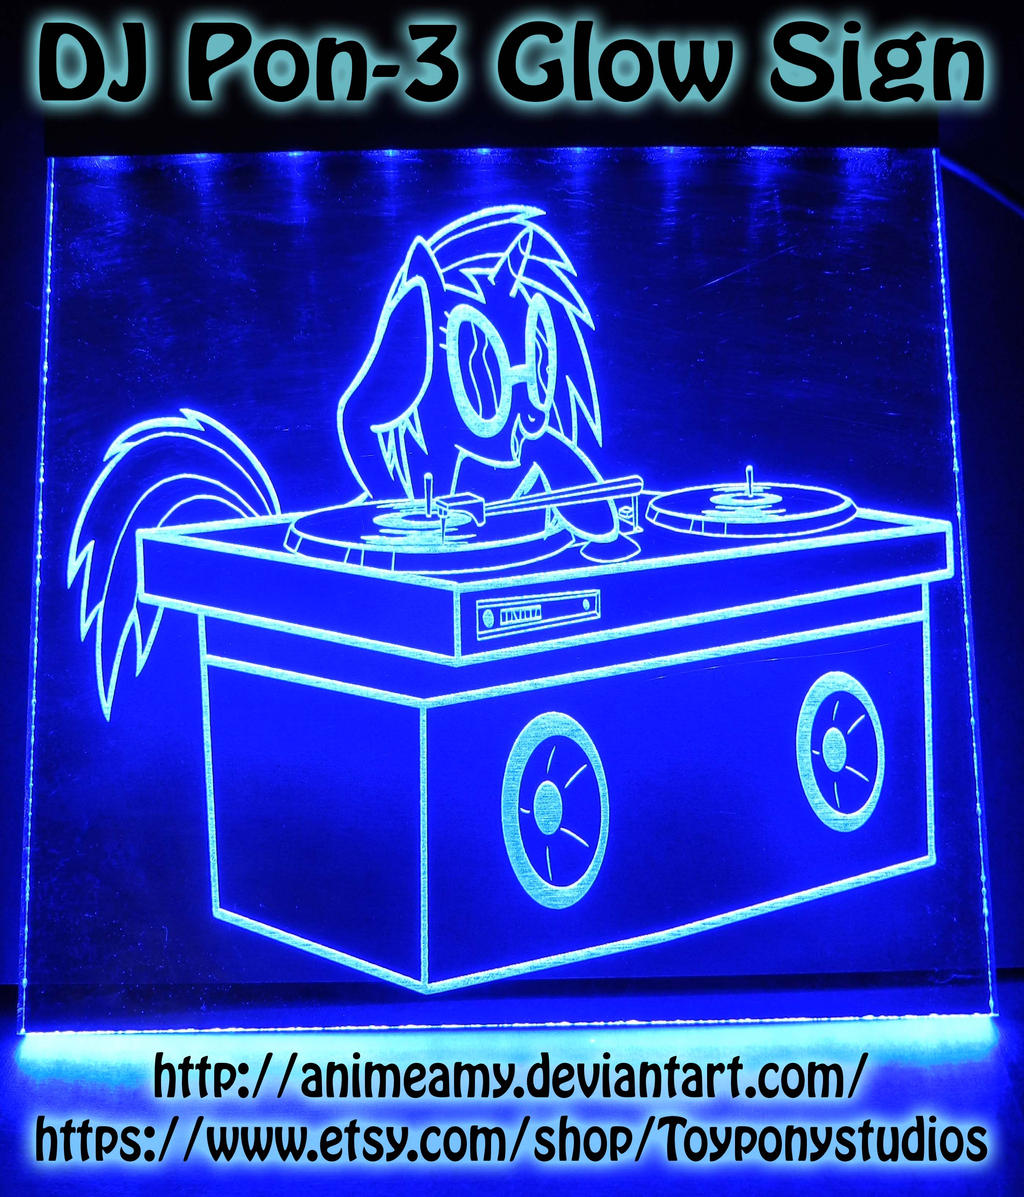 DJ Pon-3 Glow Sign by AnimeAmy